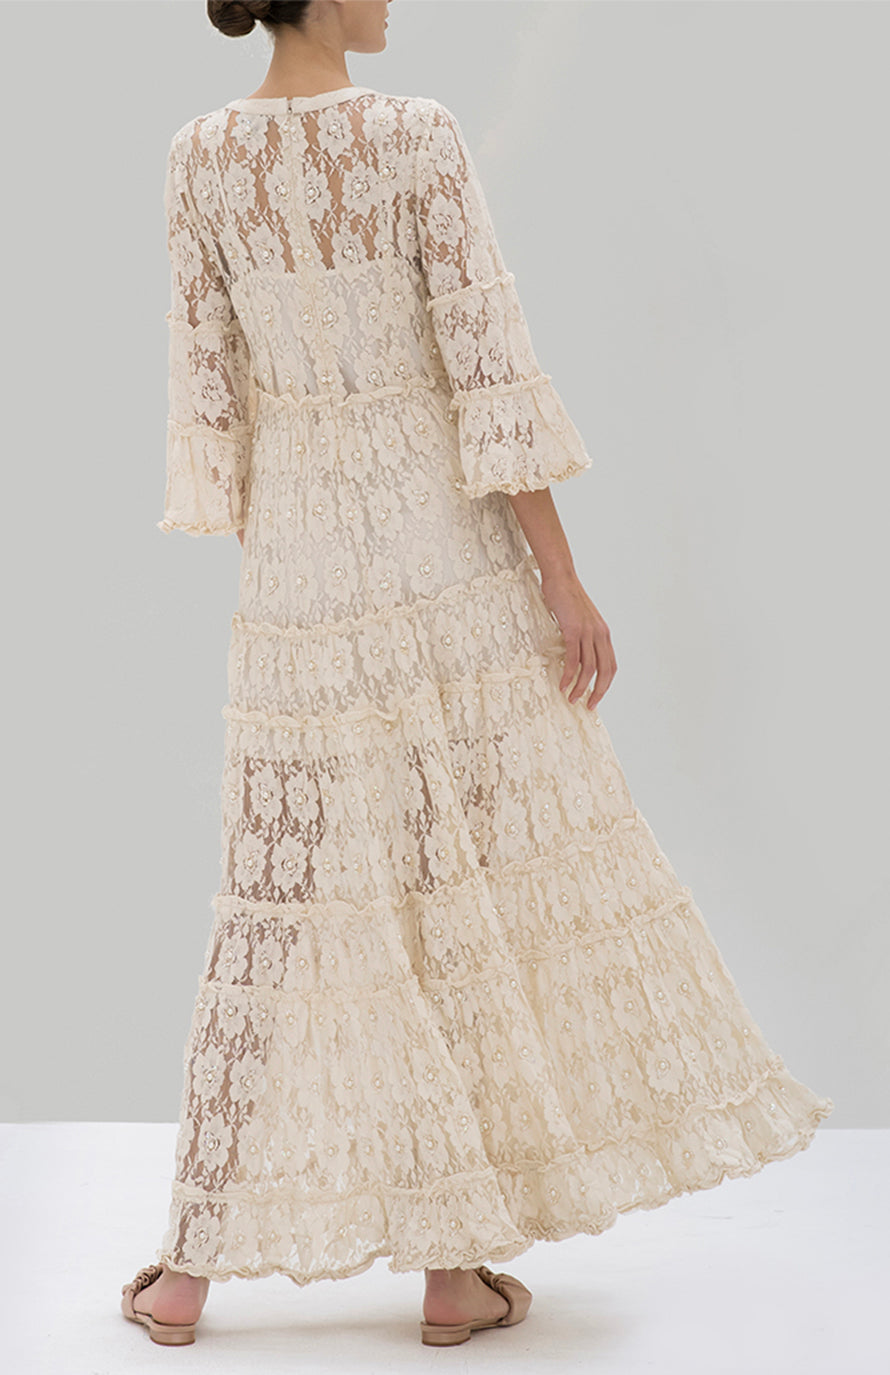 Alexis Alvin Dress Beaded Ivory lace - Rear View